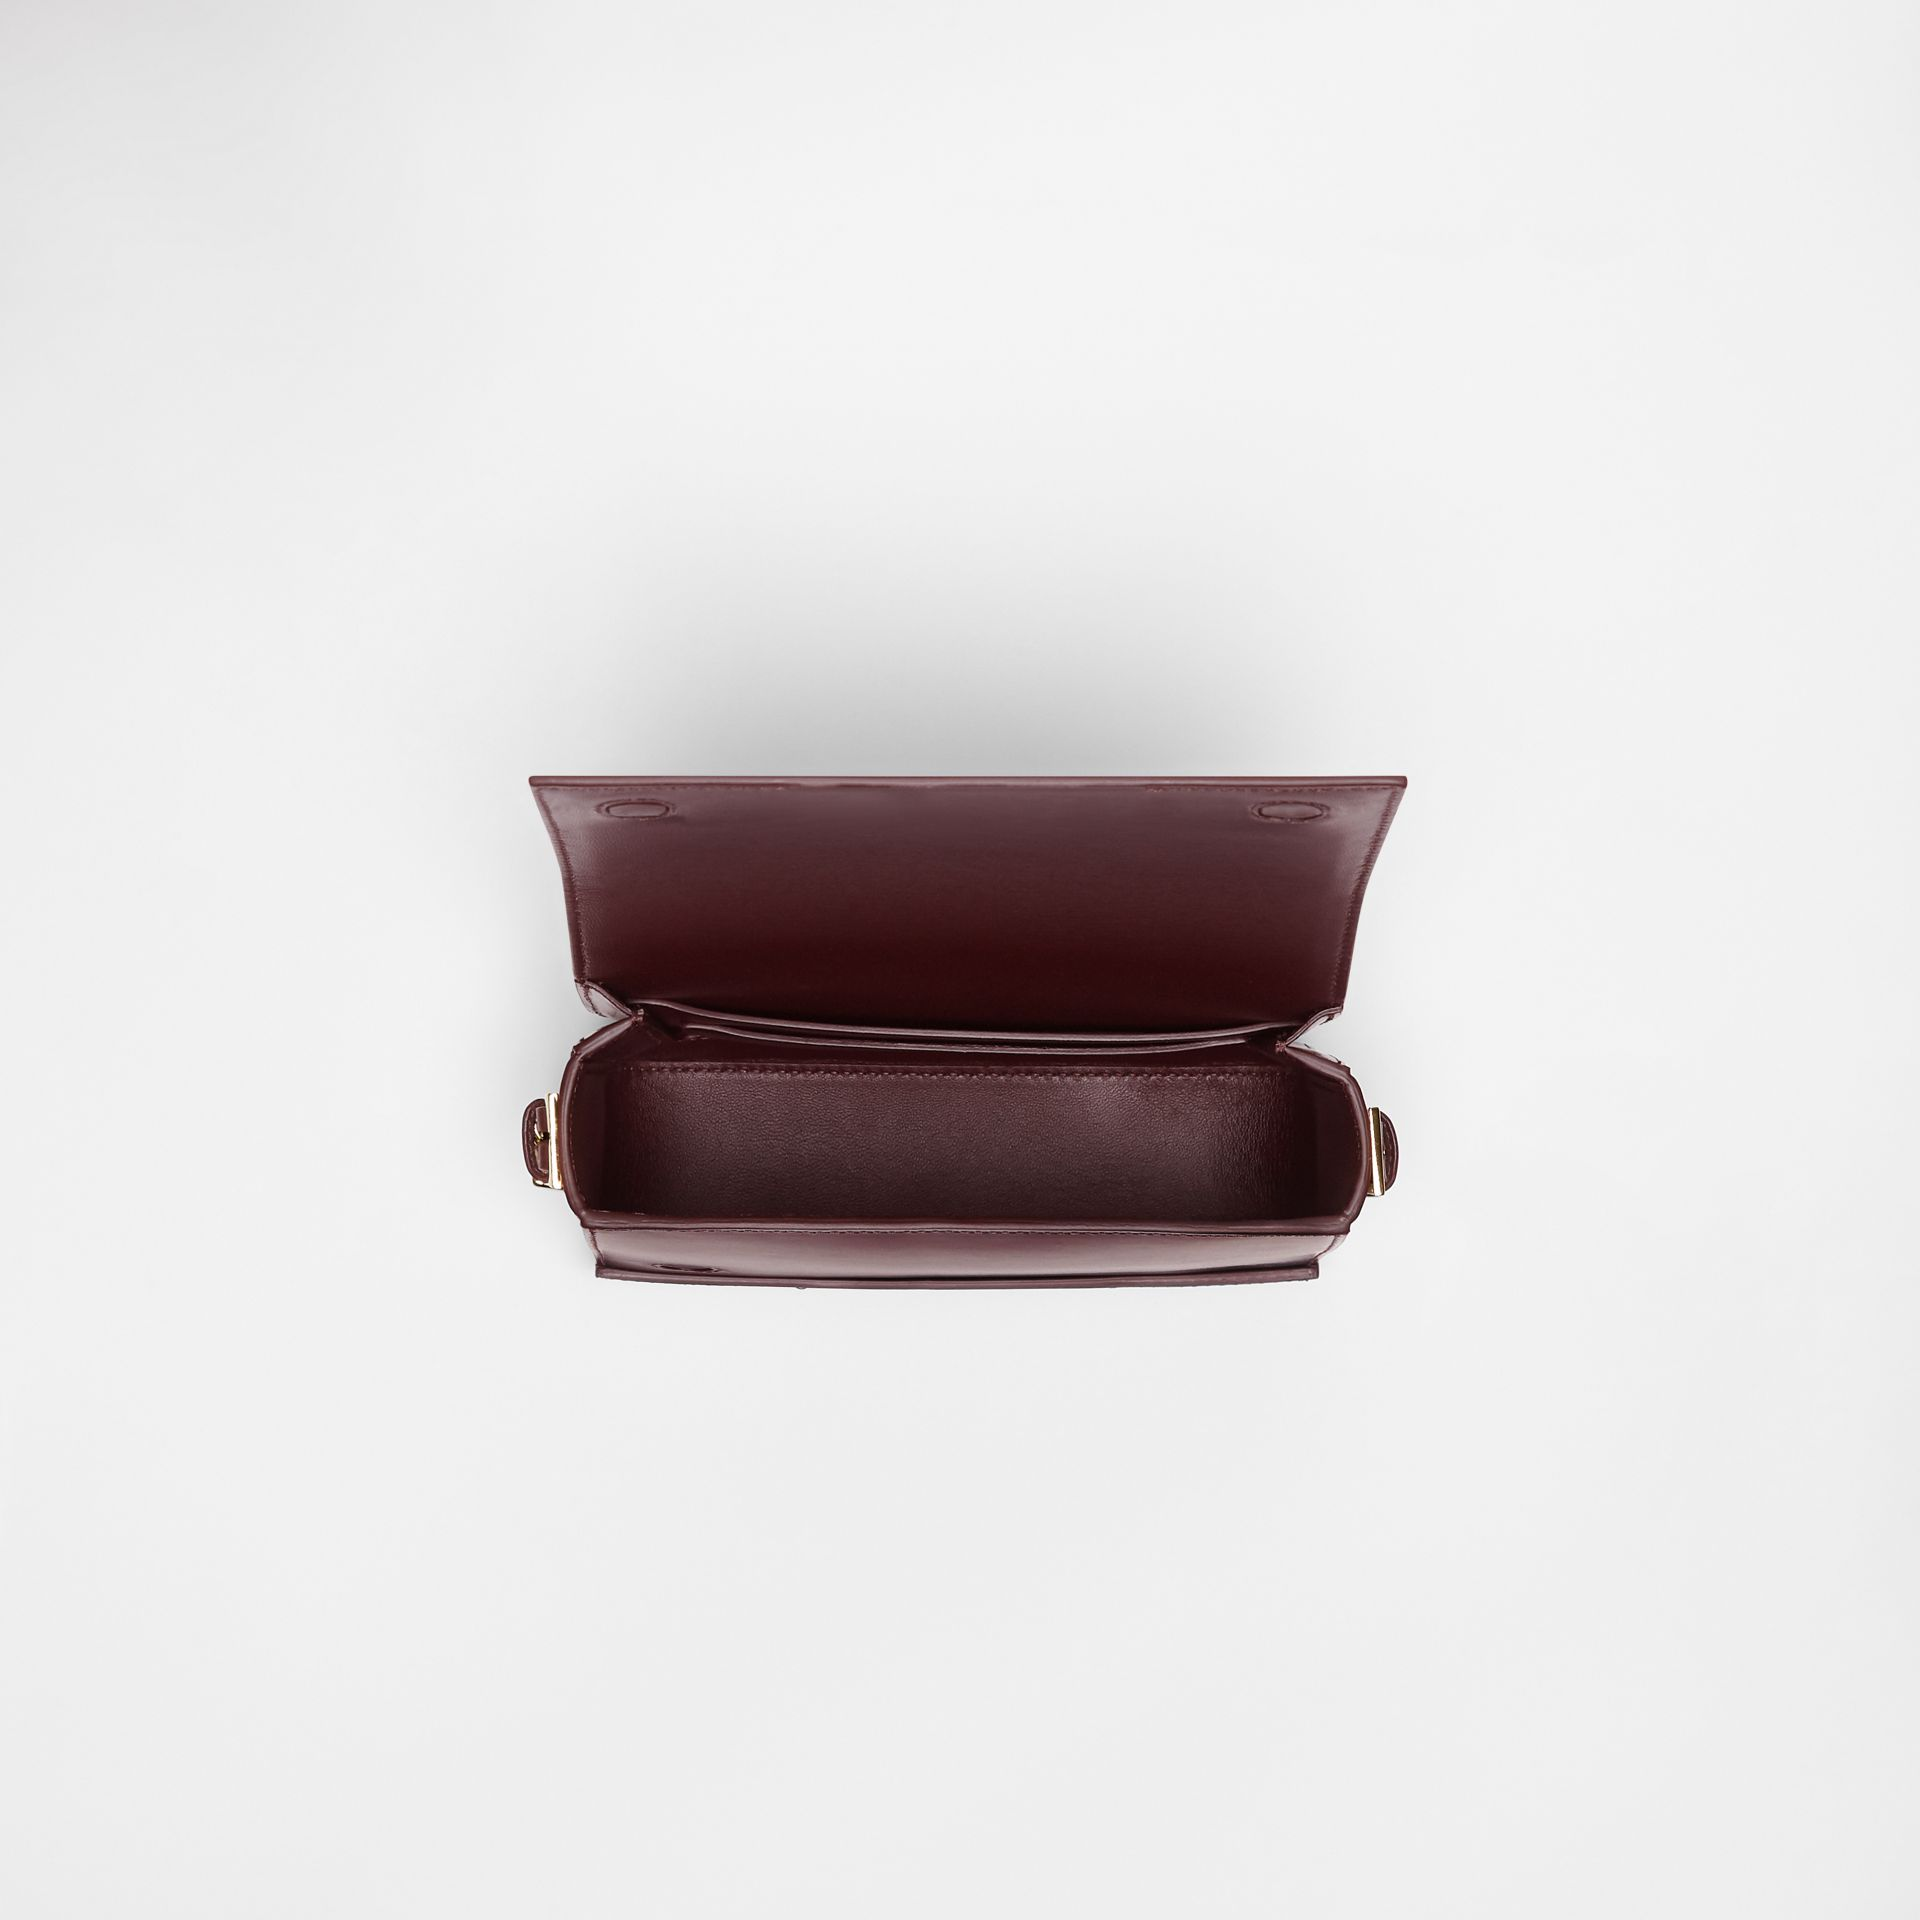 Small Leather Grace Bag in Oxblood - Women | Burberry United Kingdom - gallery image 4